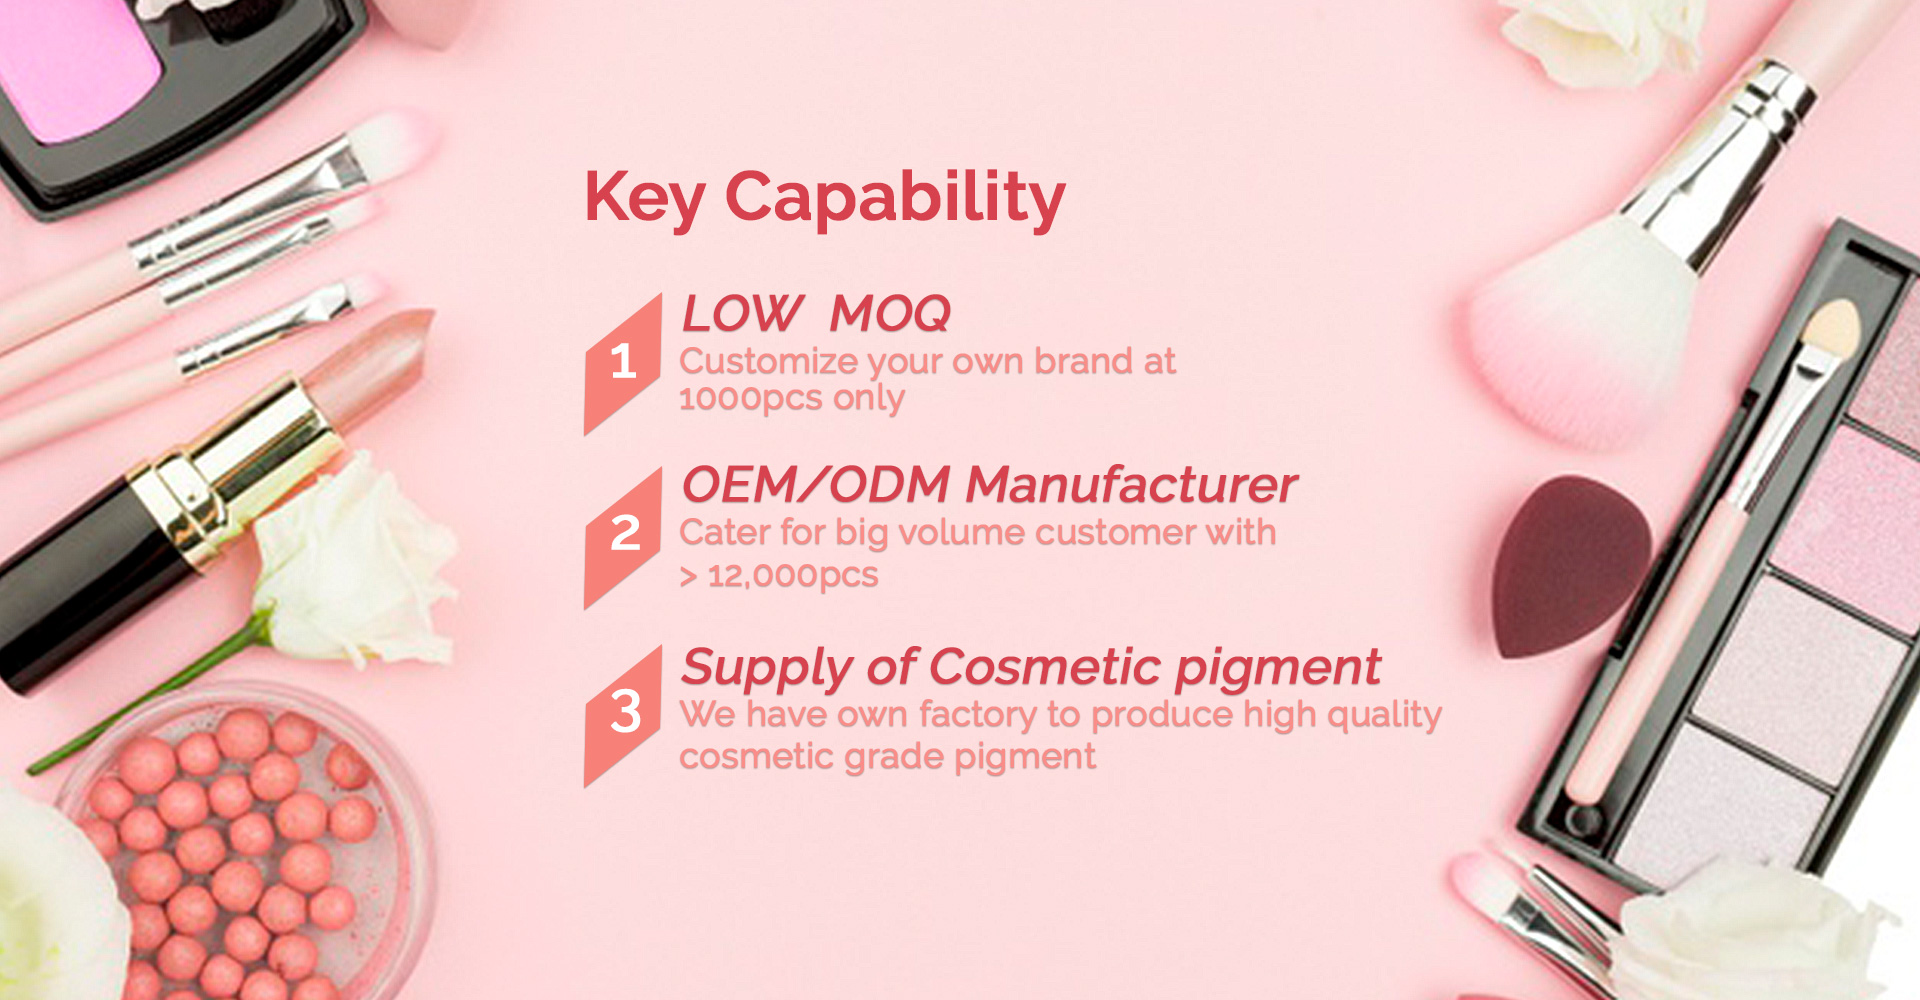 LOW  MOQ Customize your own brand at 100pcs only, OEM/ODM Manufacturer, Cater for big volume customer with > 12,000pcs, Supply of Cosmetic pigment, We have own factory to , product high quality cosmetic grade pigment